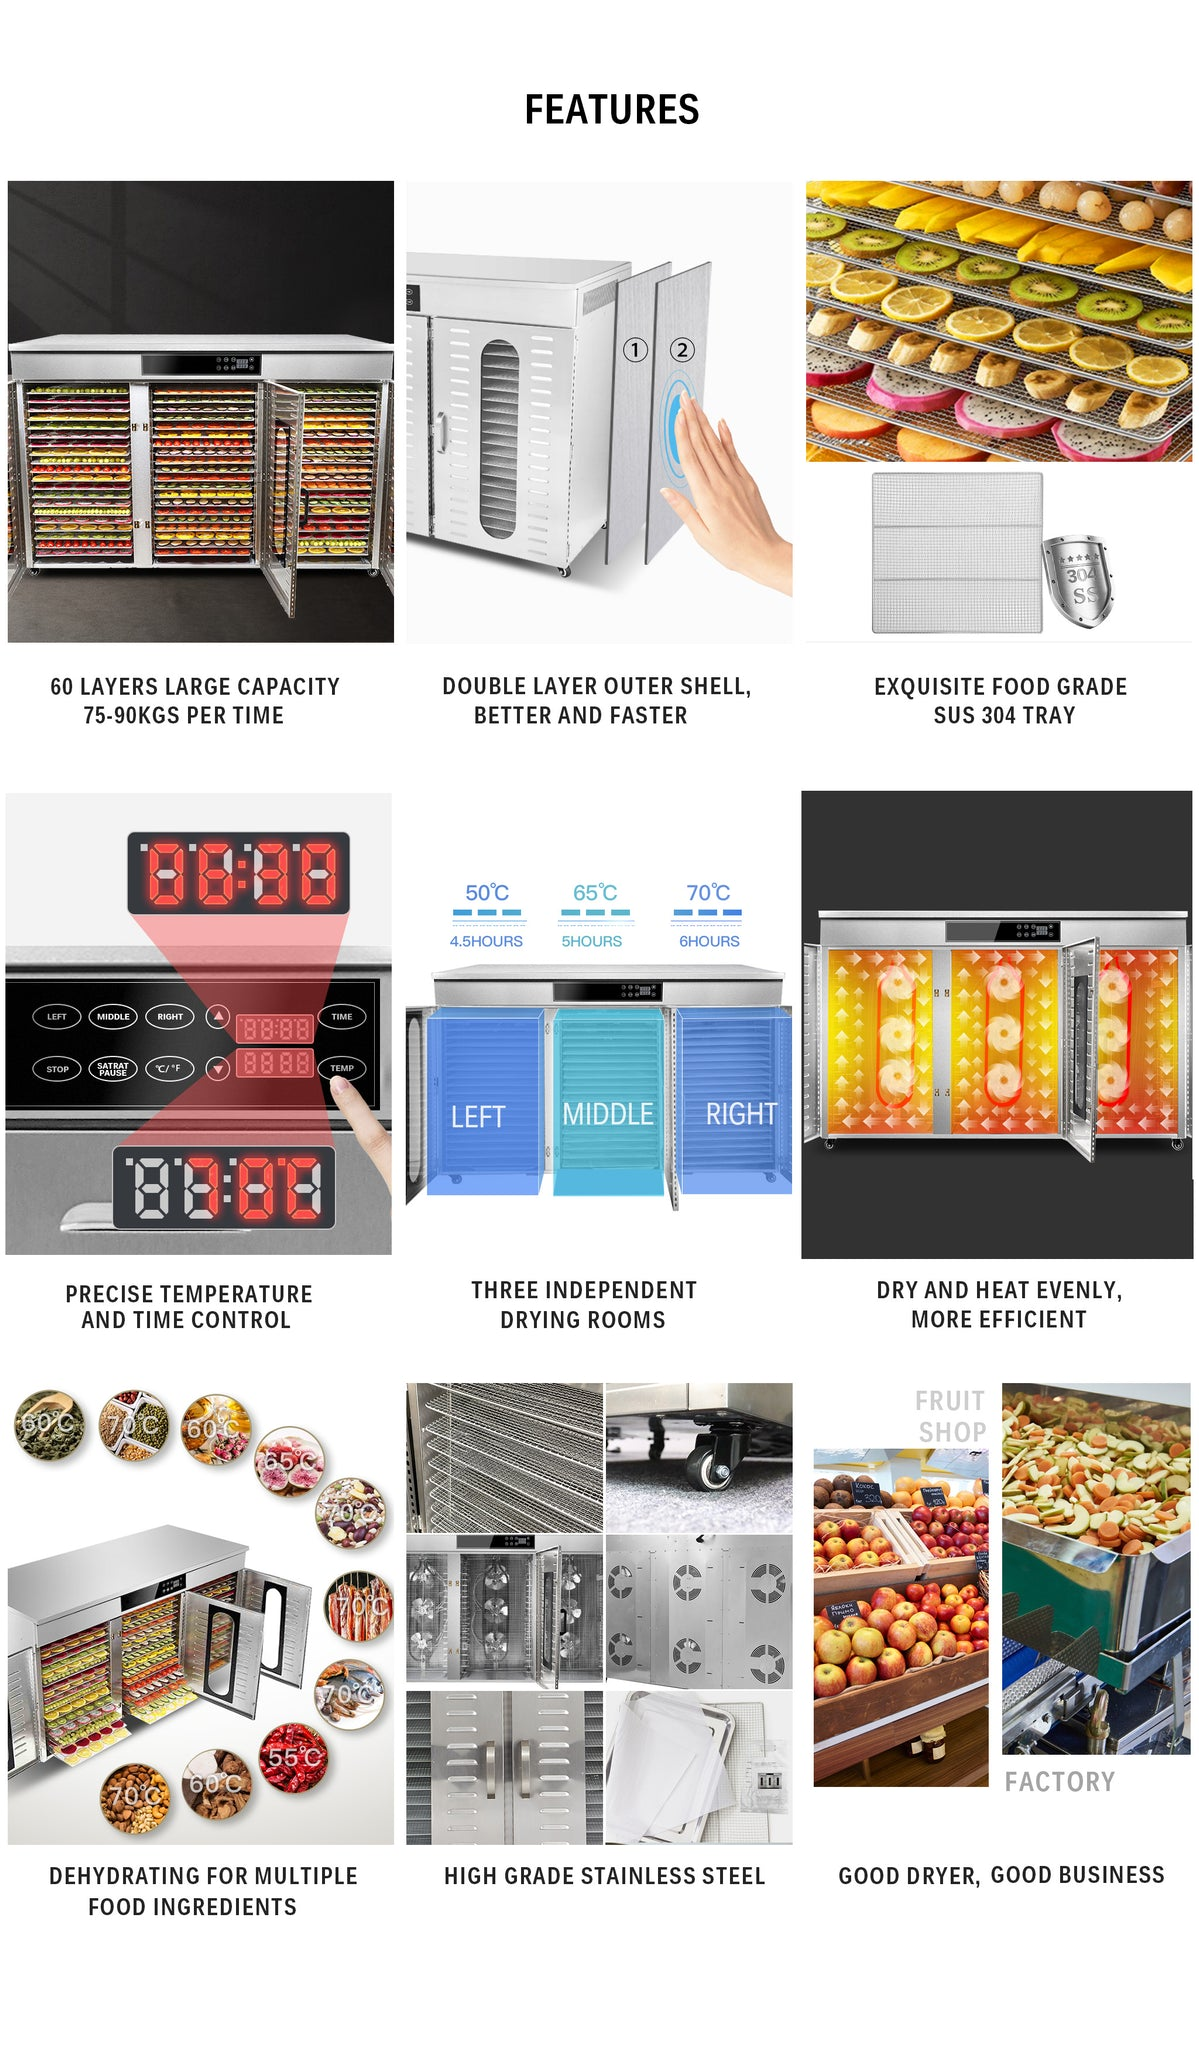 60 Layers Industrial Food Dehydrator -98.06 sq.ft Drying Area | Three Independent Drying Rooms | Digital Adjustable Timer | Temperature Control | Dryer for Jerky, Herb, Meat, Beef, Fruit and Vegetables